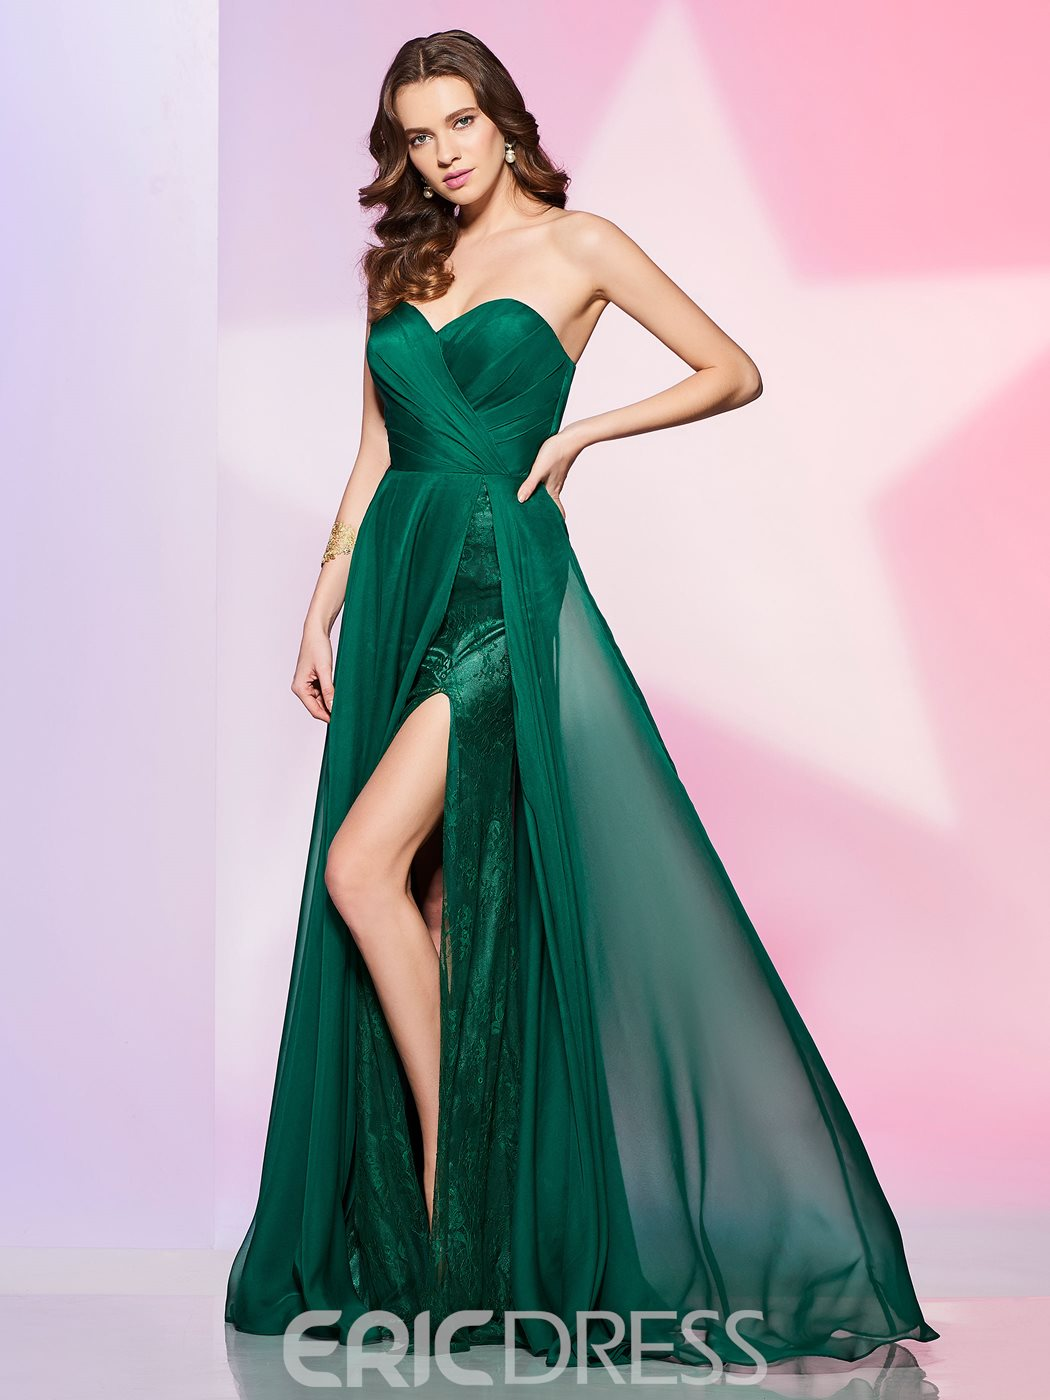 Ericdress Designer A Line Sweetheart Side Slit Floor Length Prom Dress